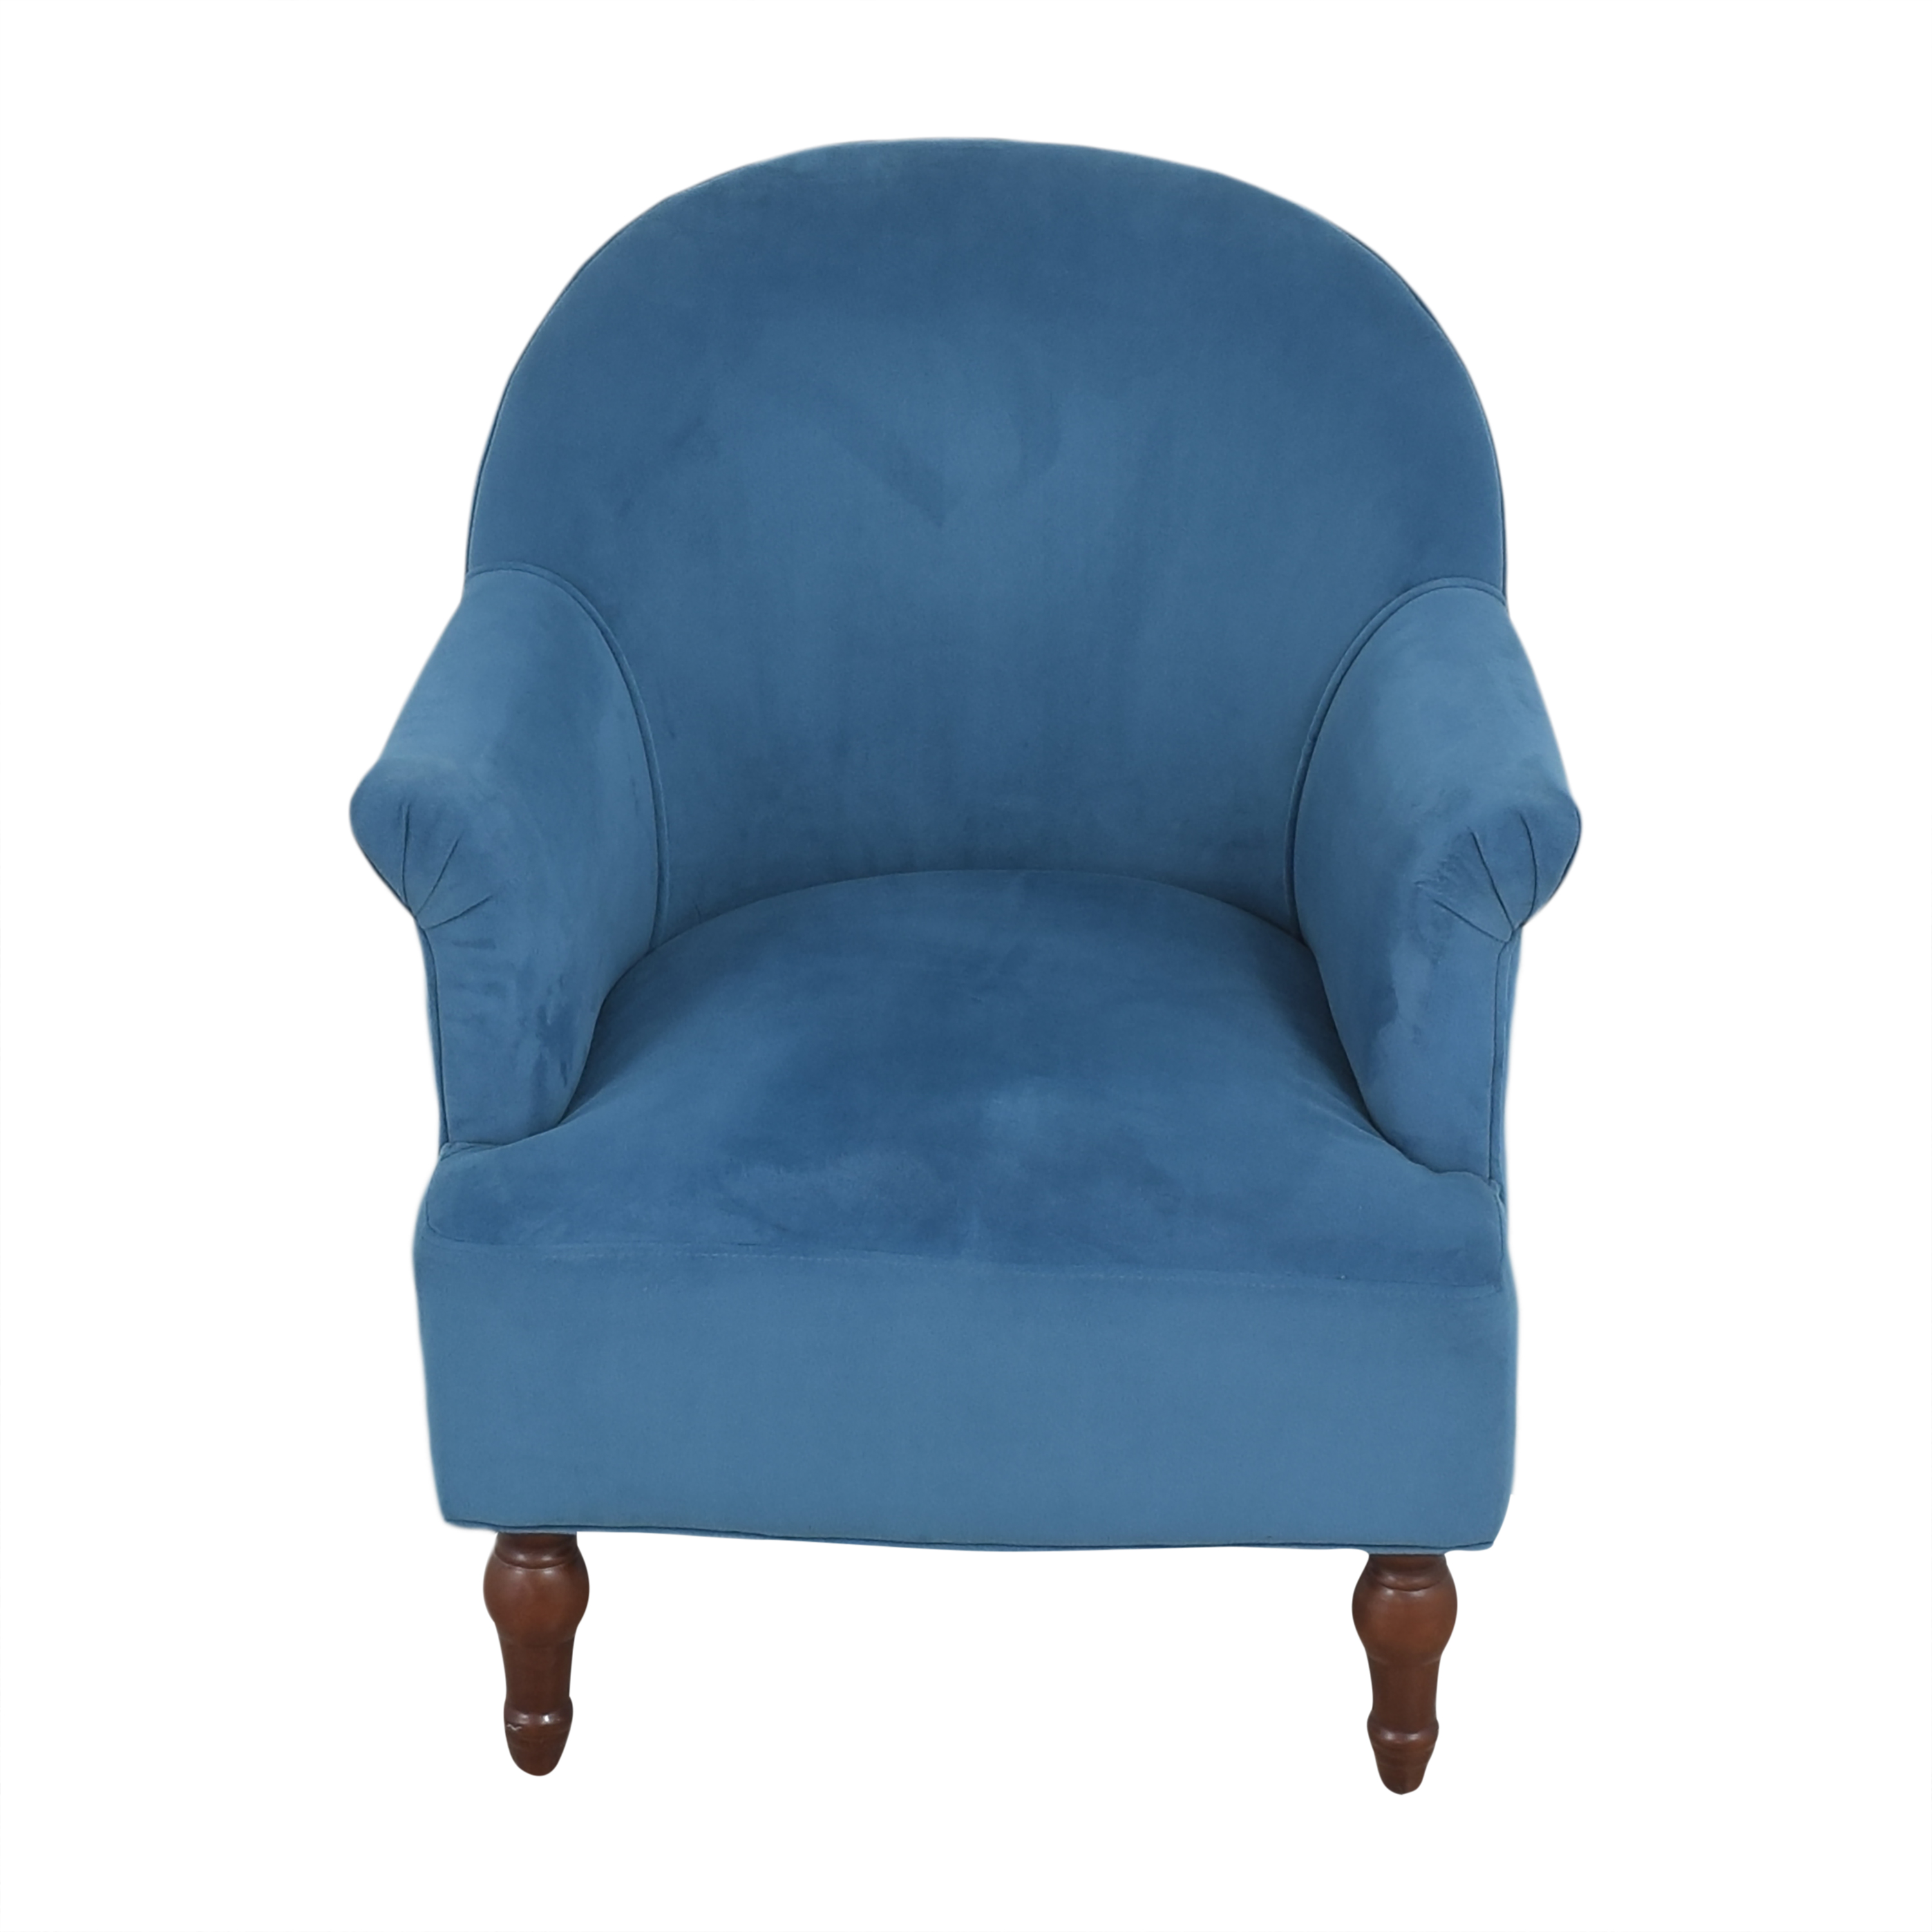 World Market Upholstered Accent Chair sale